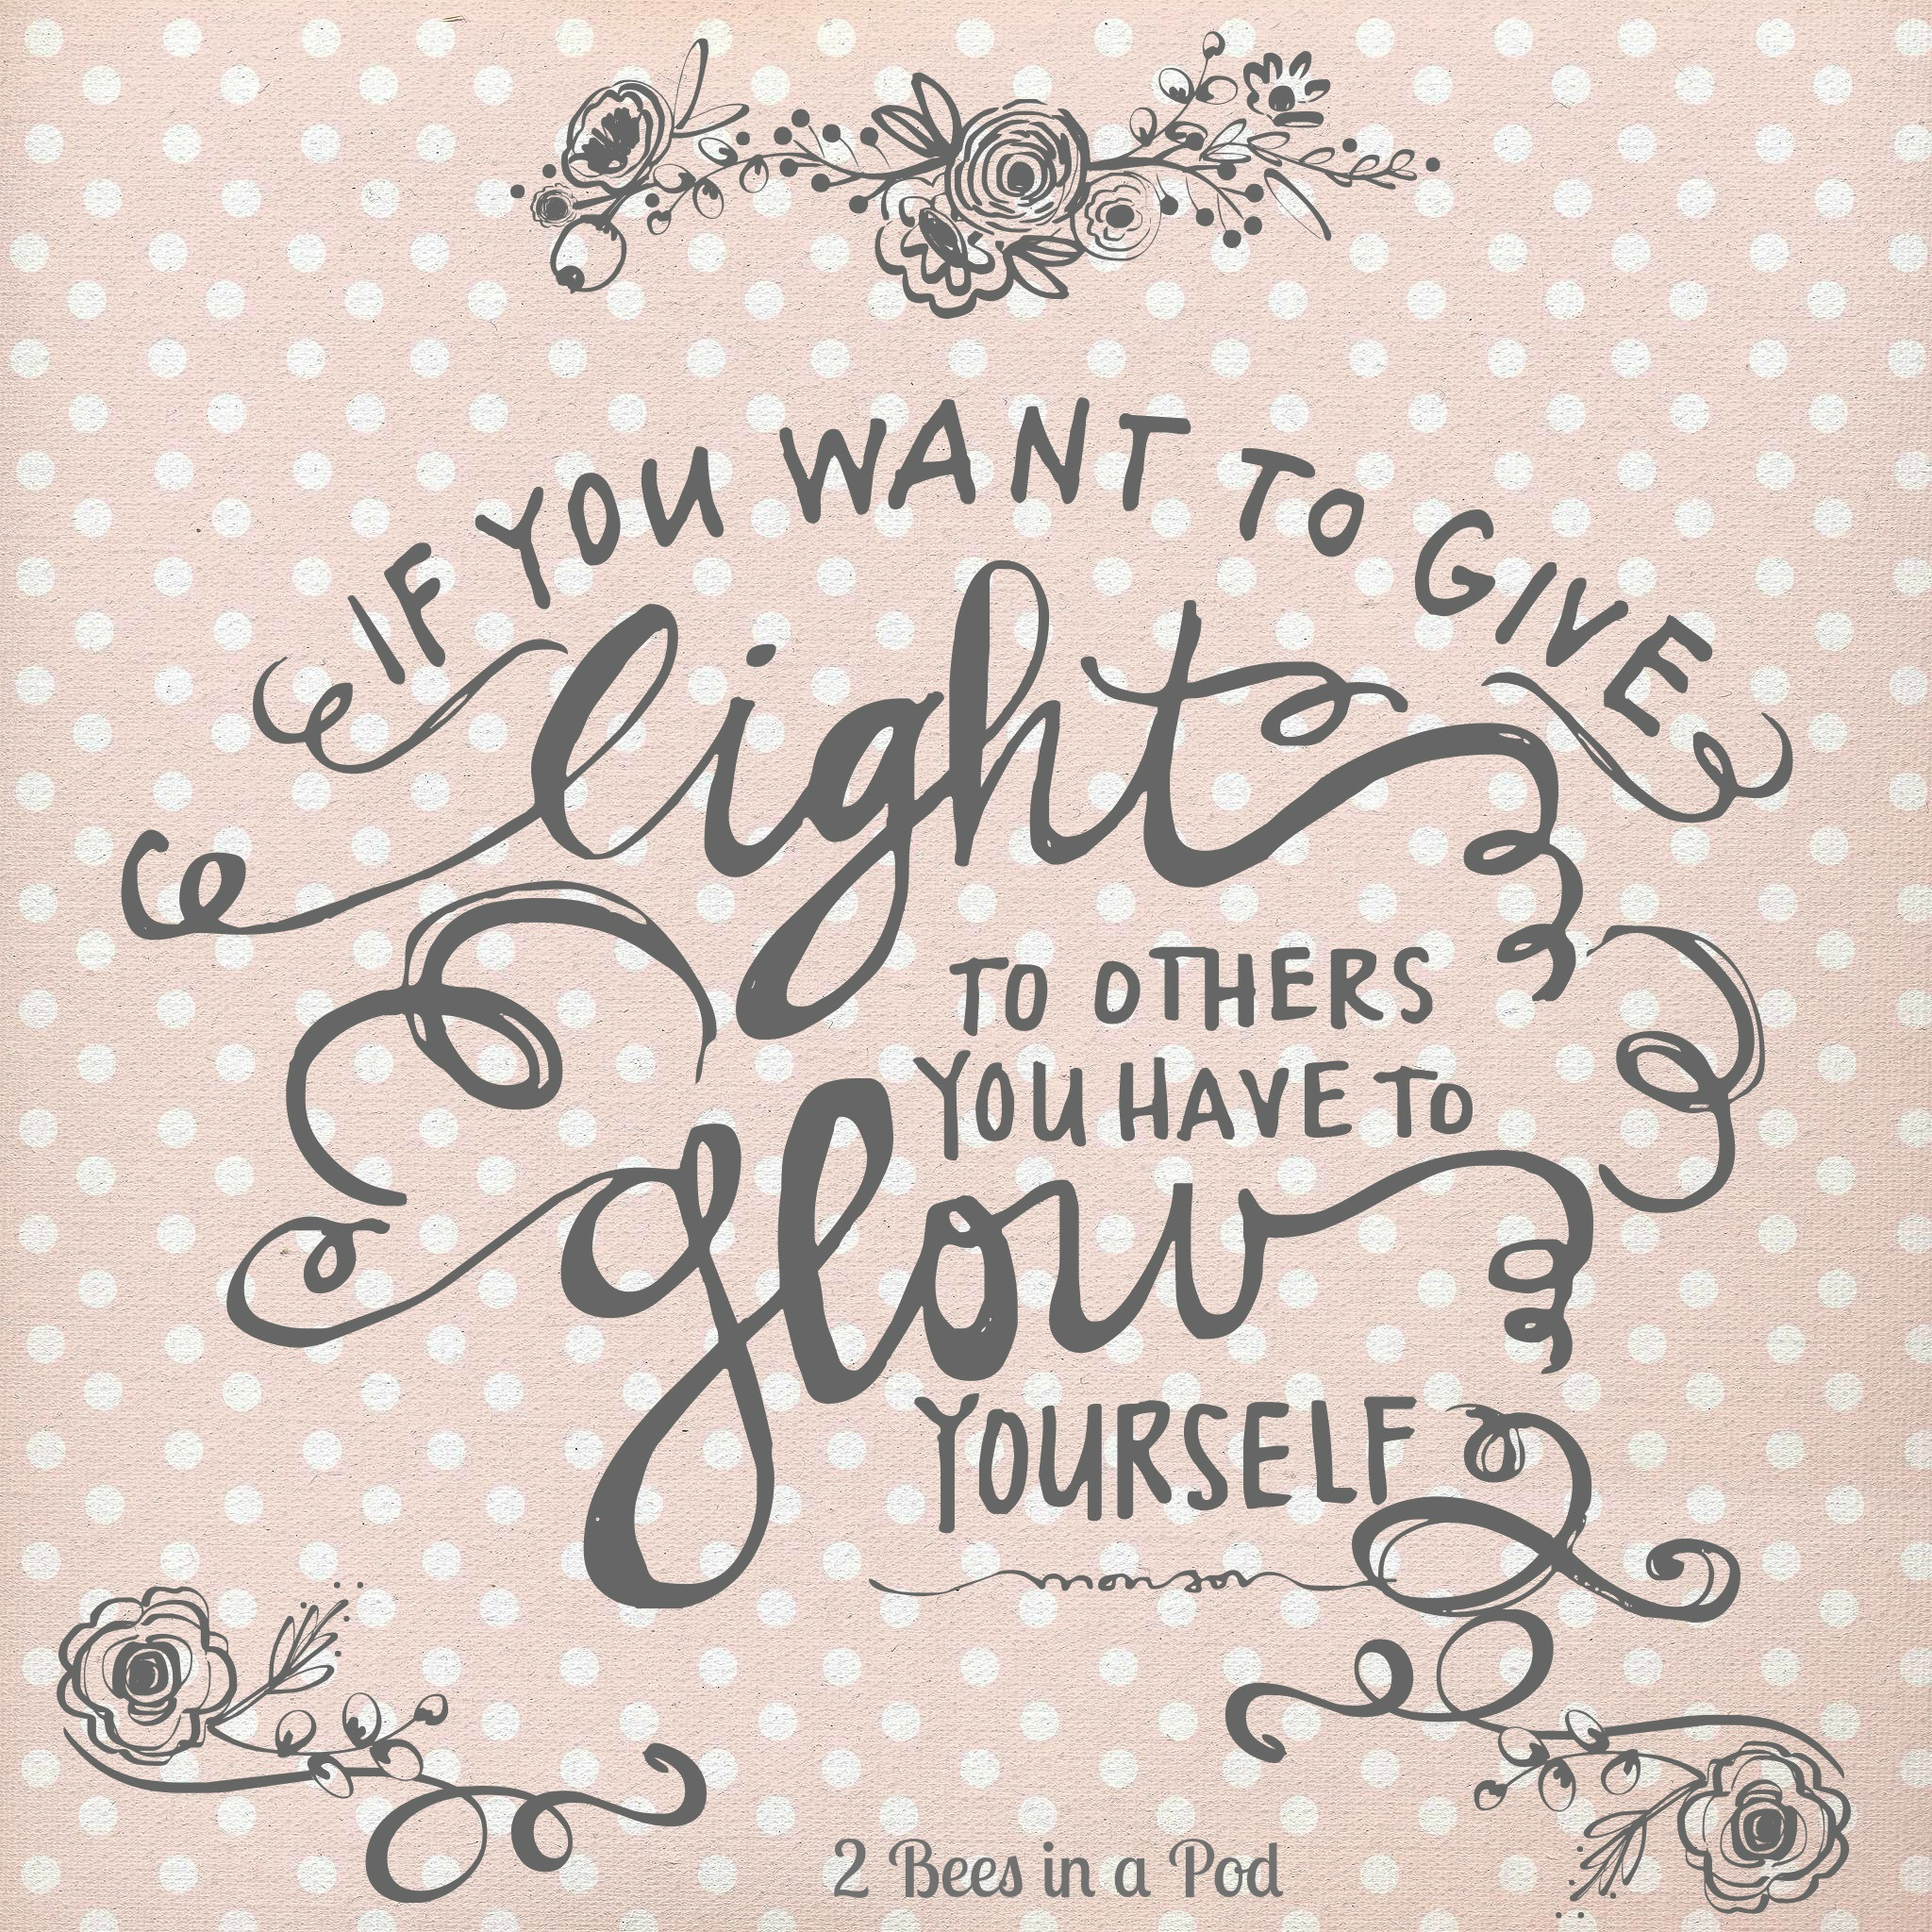 favorite Words - If you want to give light to others, you have to glow yourself.